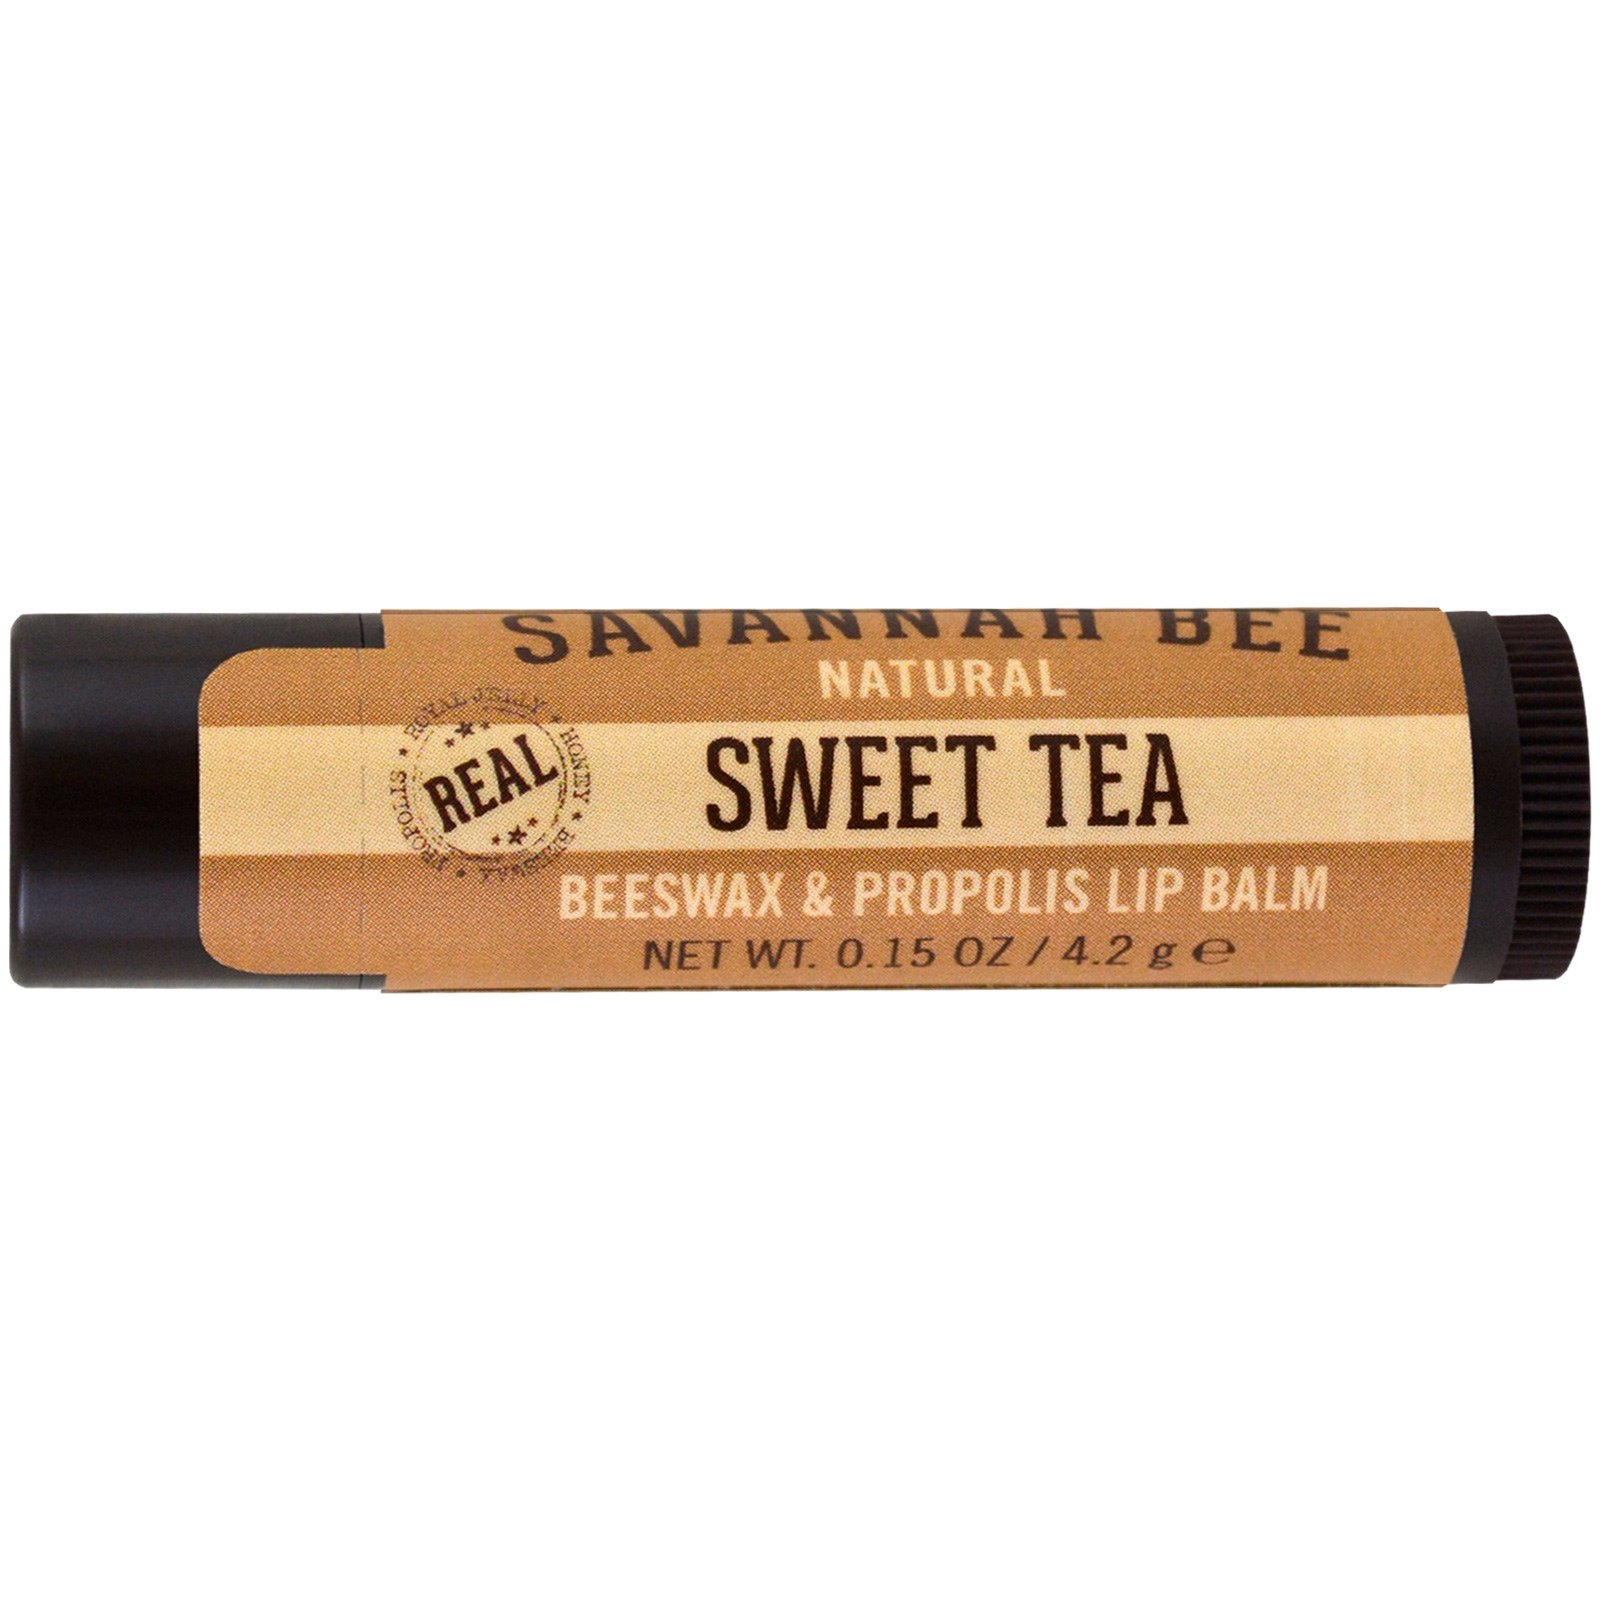 Savannah Bee Sweet Tea Beeswax Lip Balm 4.2g